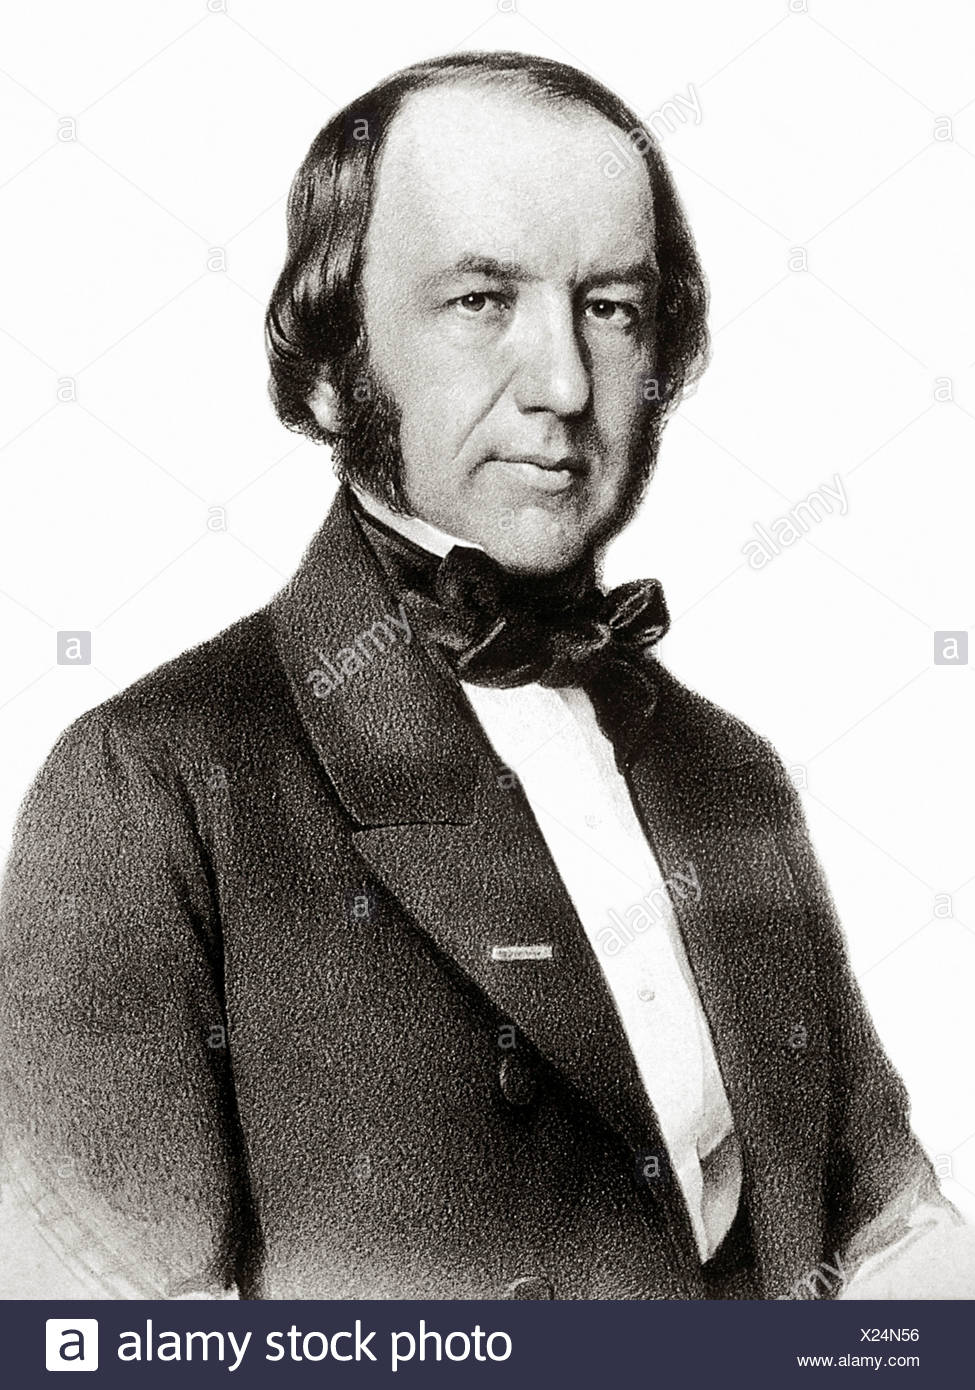 A portrait French physiologist Claude Bernard (1813-1878). He was author 'An Introduction Study Experimental Medicine' which - Stock Image